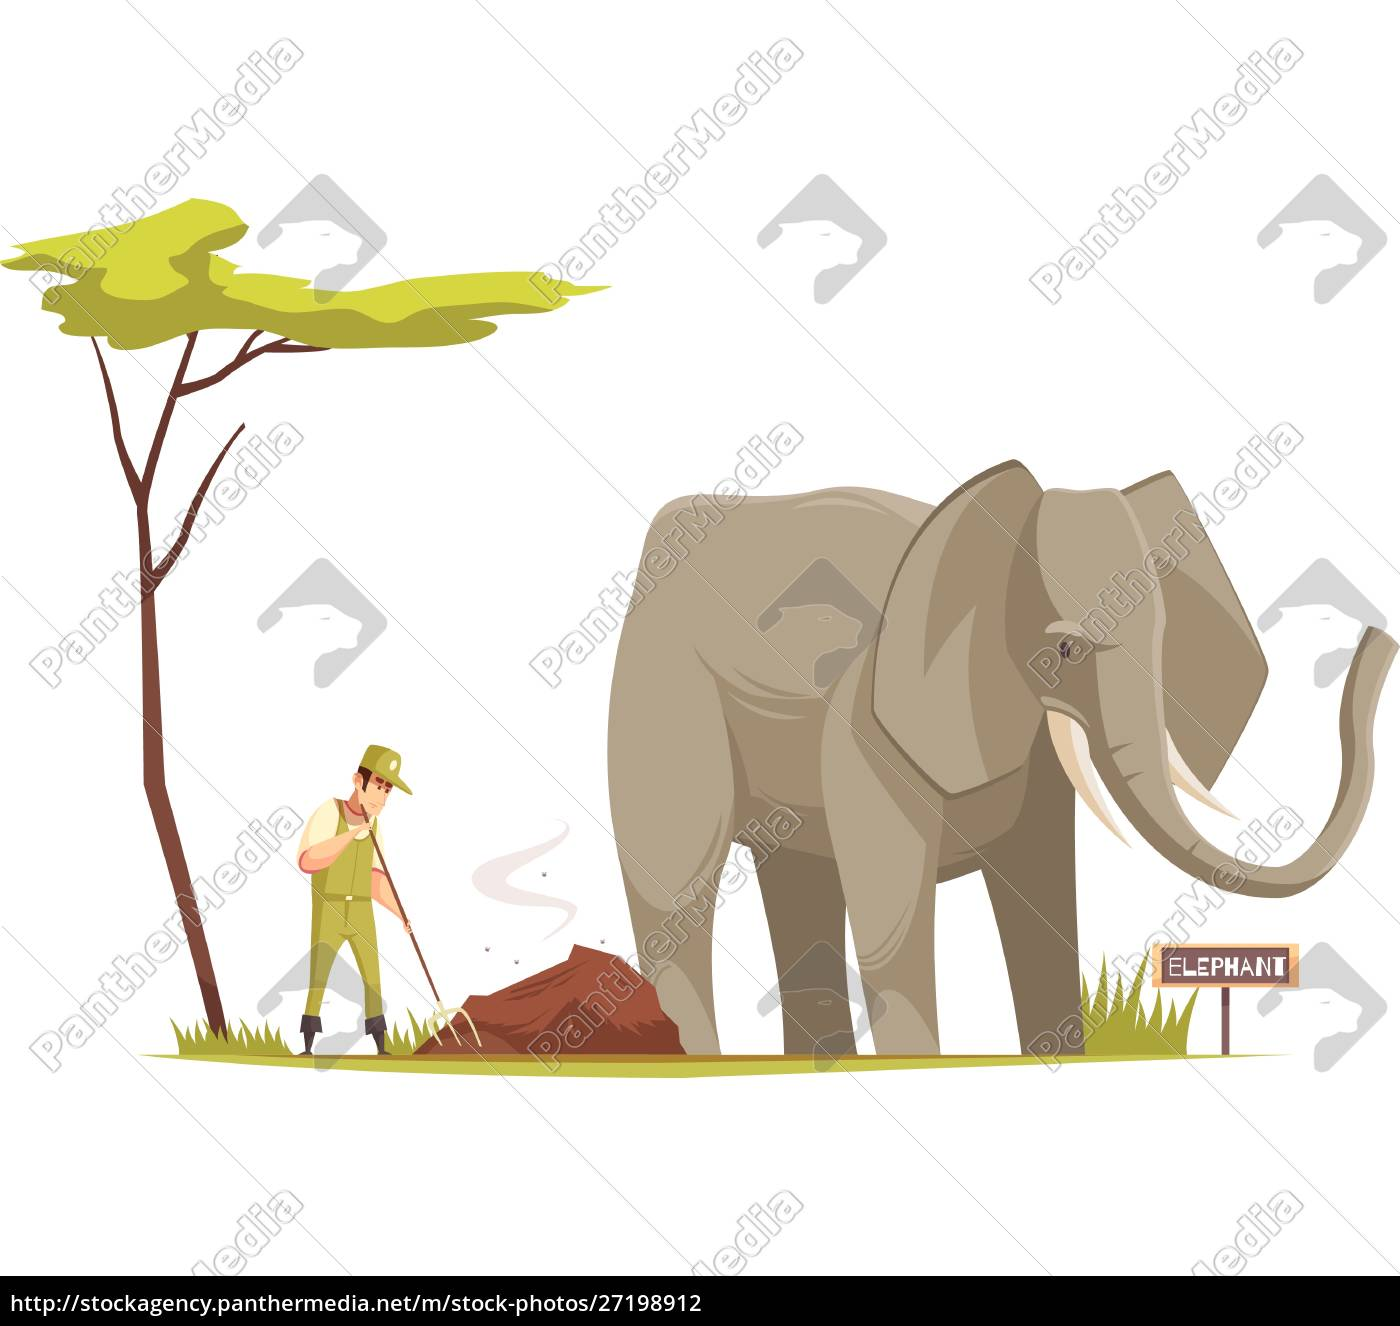 elephant, standing, outdoor, and, zoo, keeper - 27198912